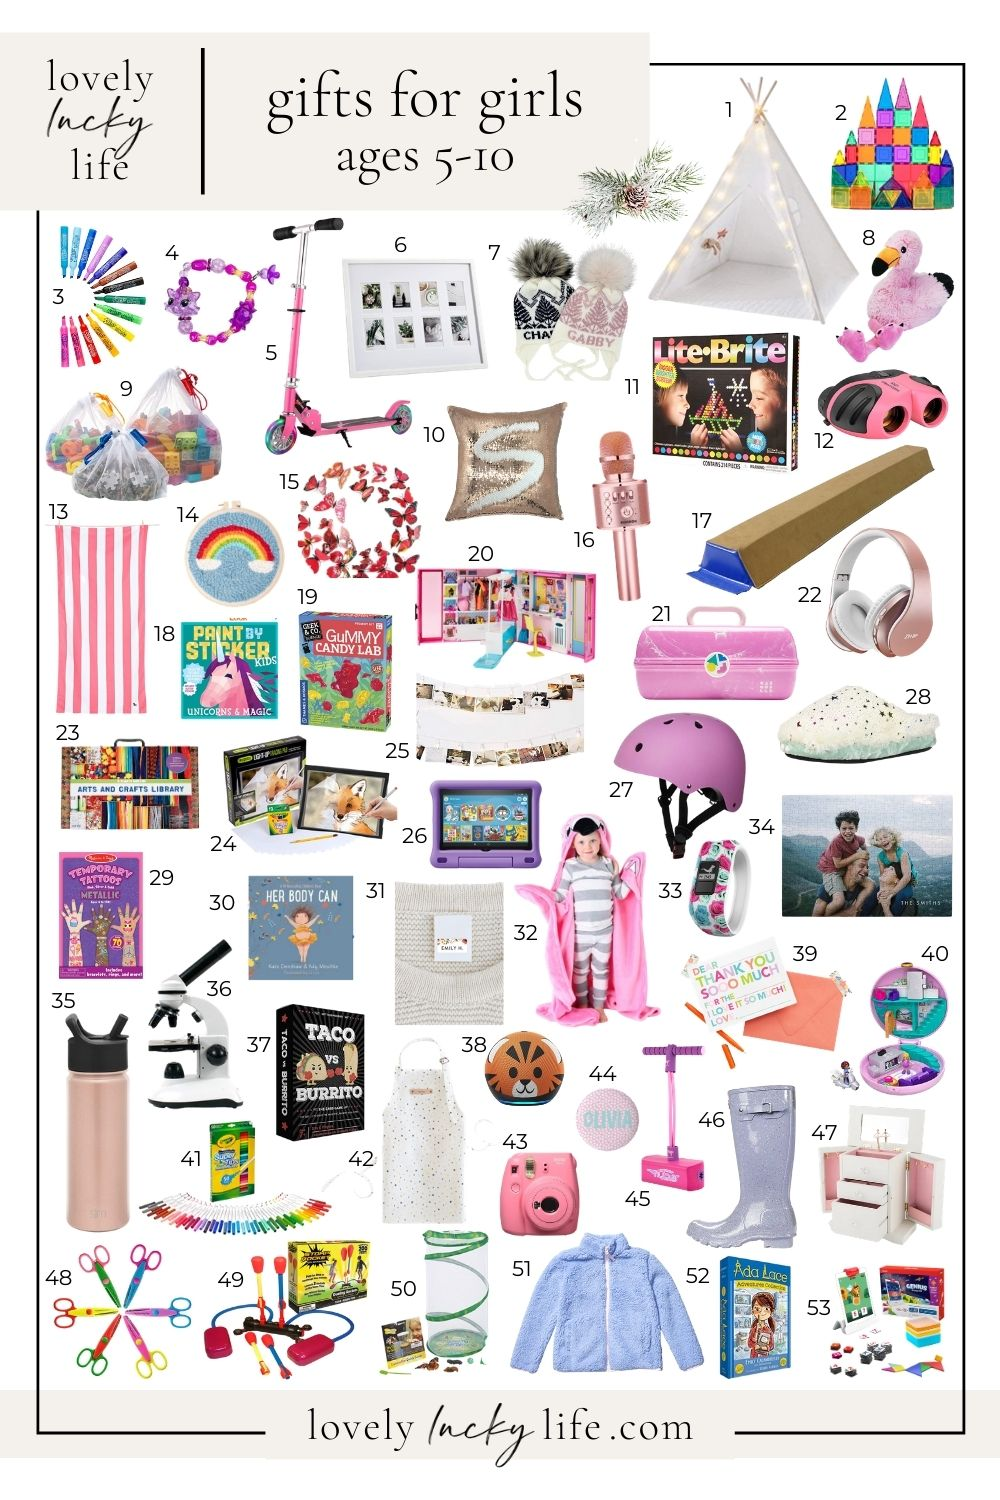 75 Christmas Gift Ideas Stocking Stuffers For Girls Lovely Lucky Life